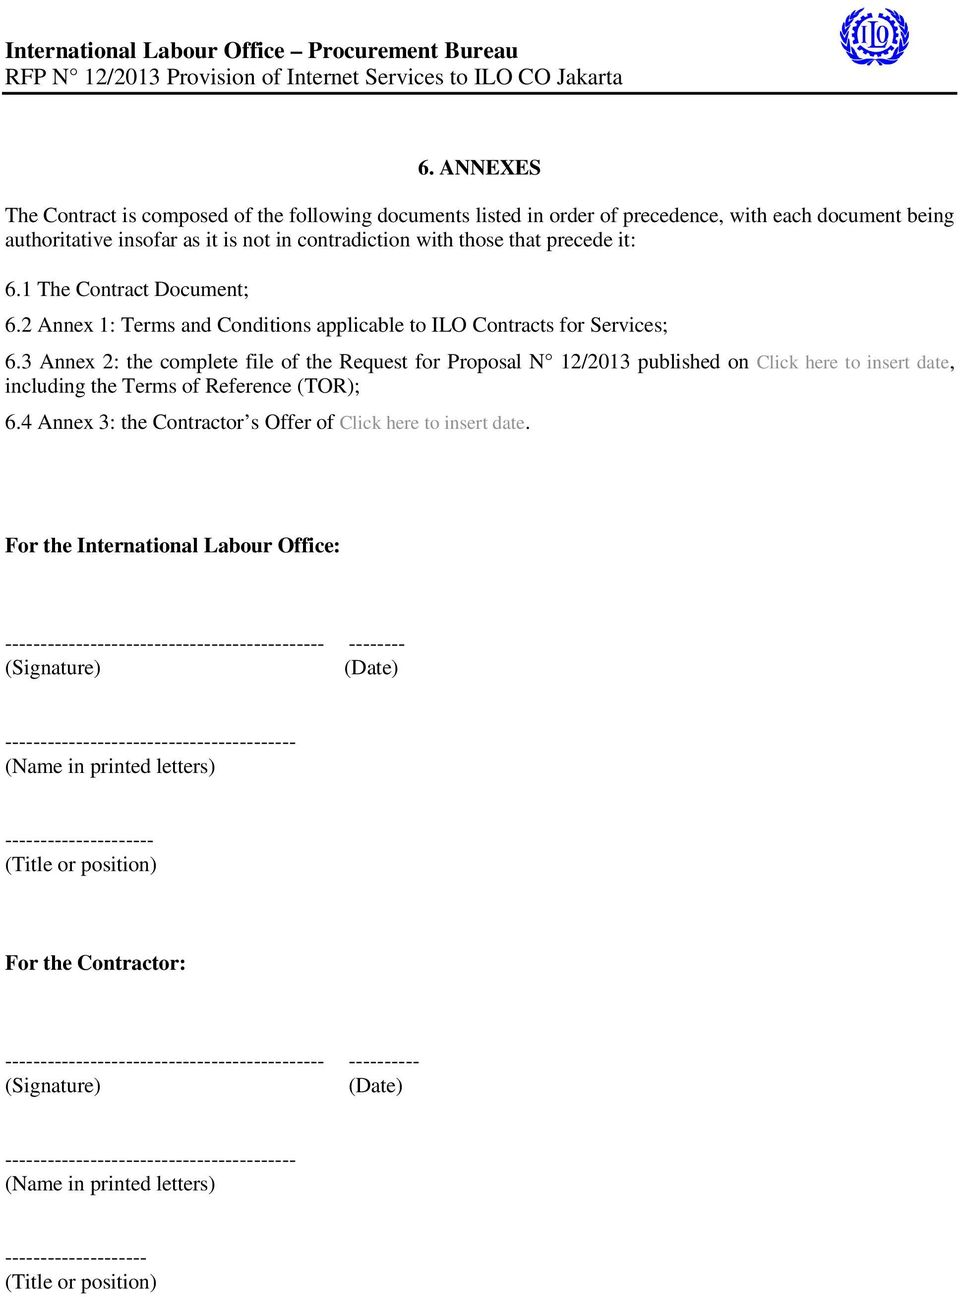 3 Annex 2: the complete file of the Request for Proposal N 12/2013 published on Click here to insert date, including the Terms of Reference (TOR); 6.